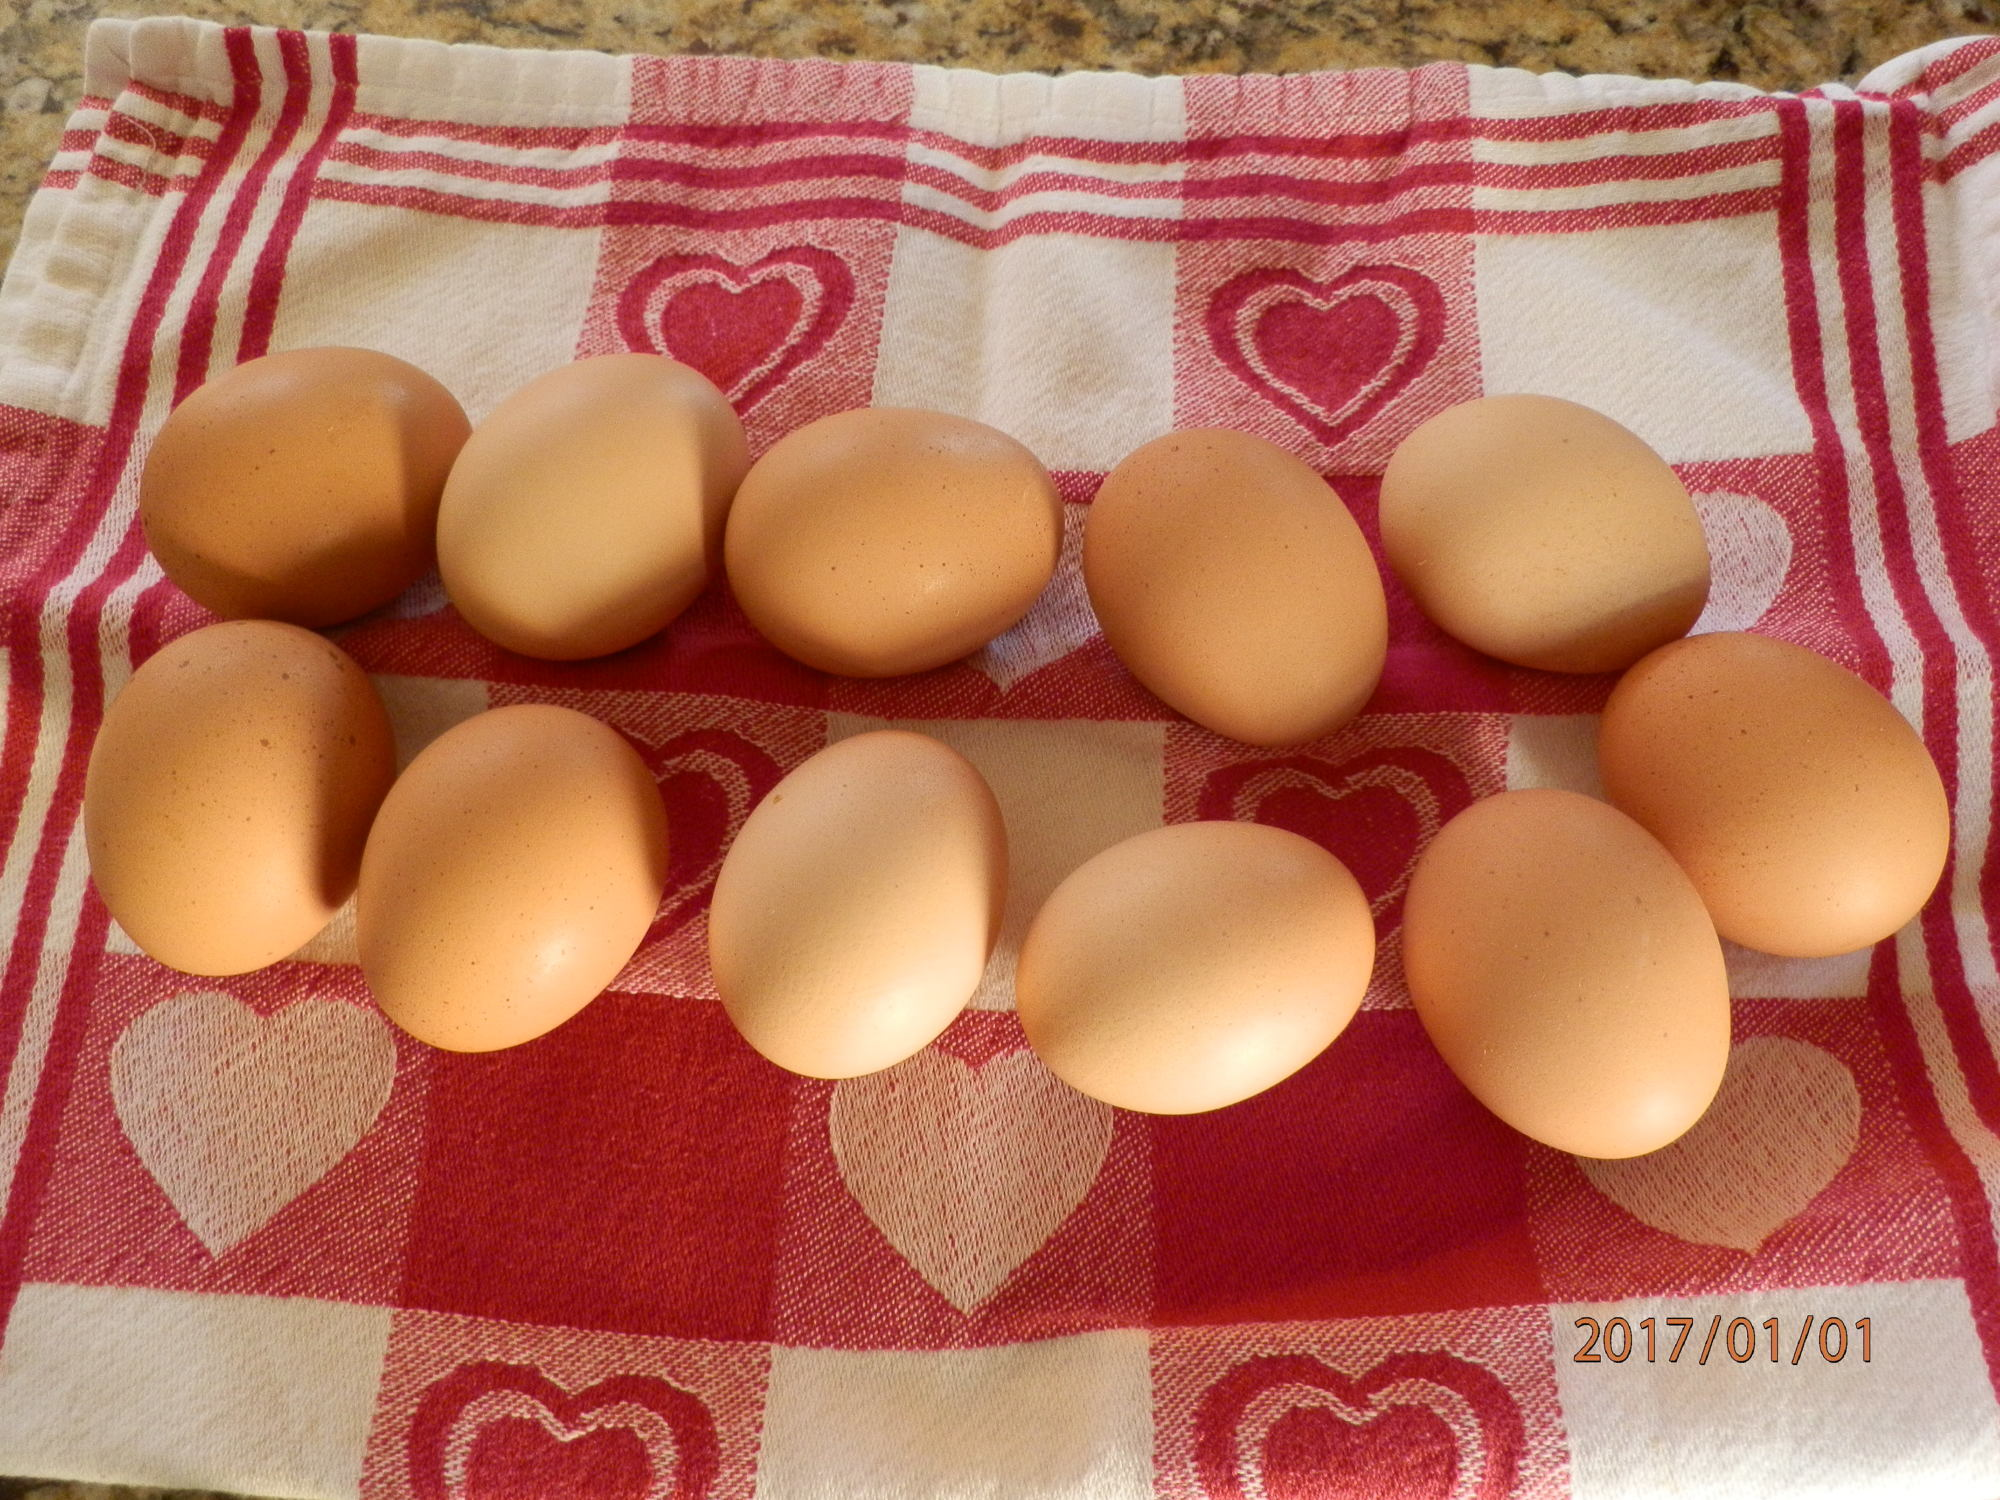 Our Chicken eggs